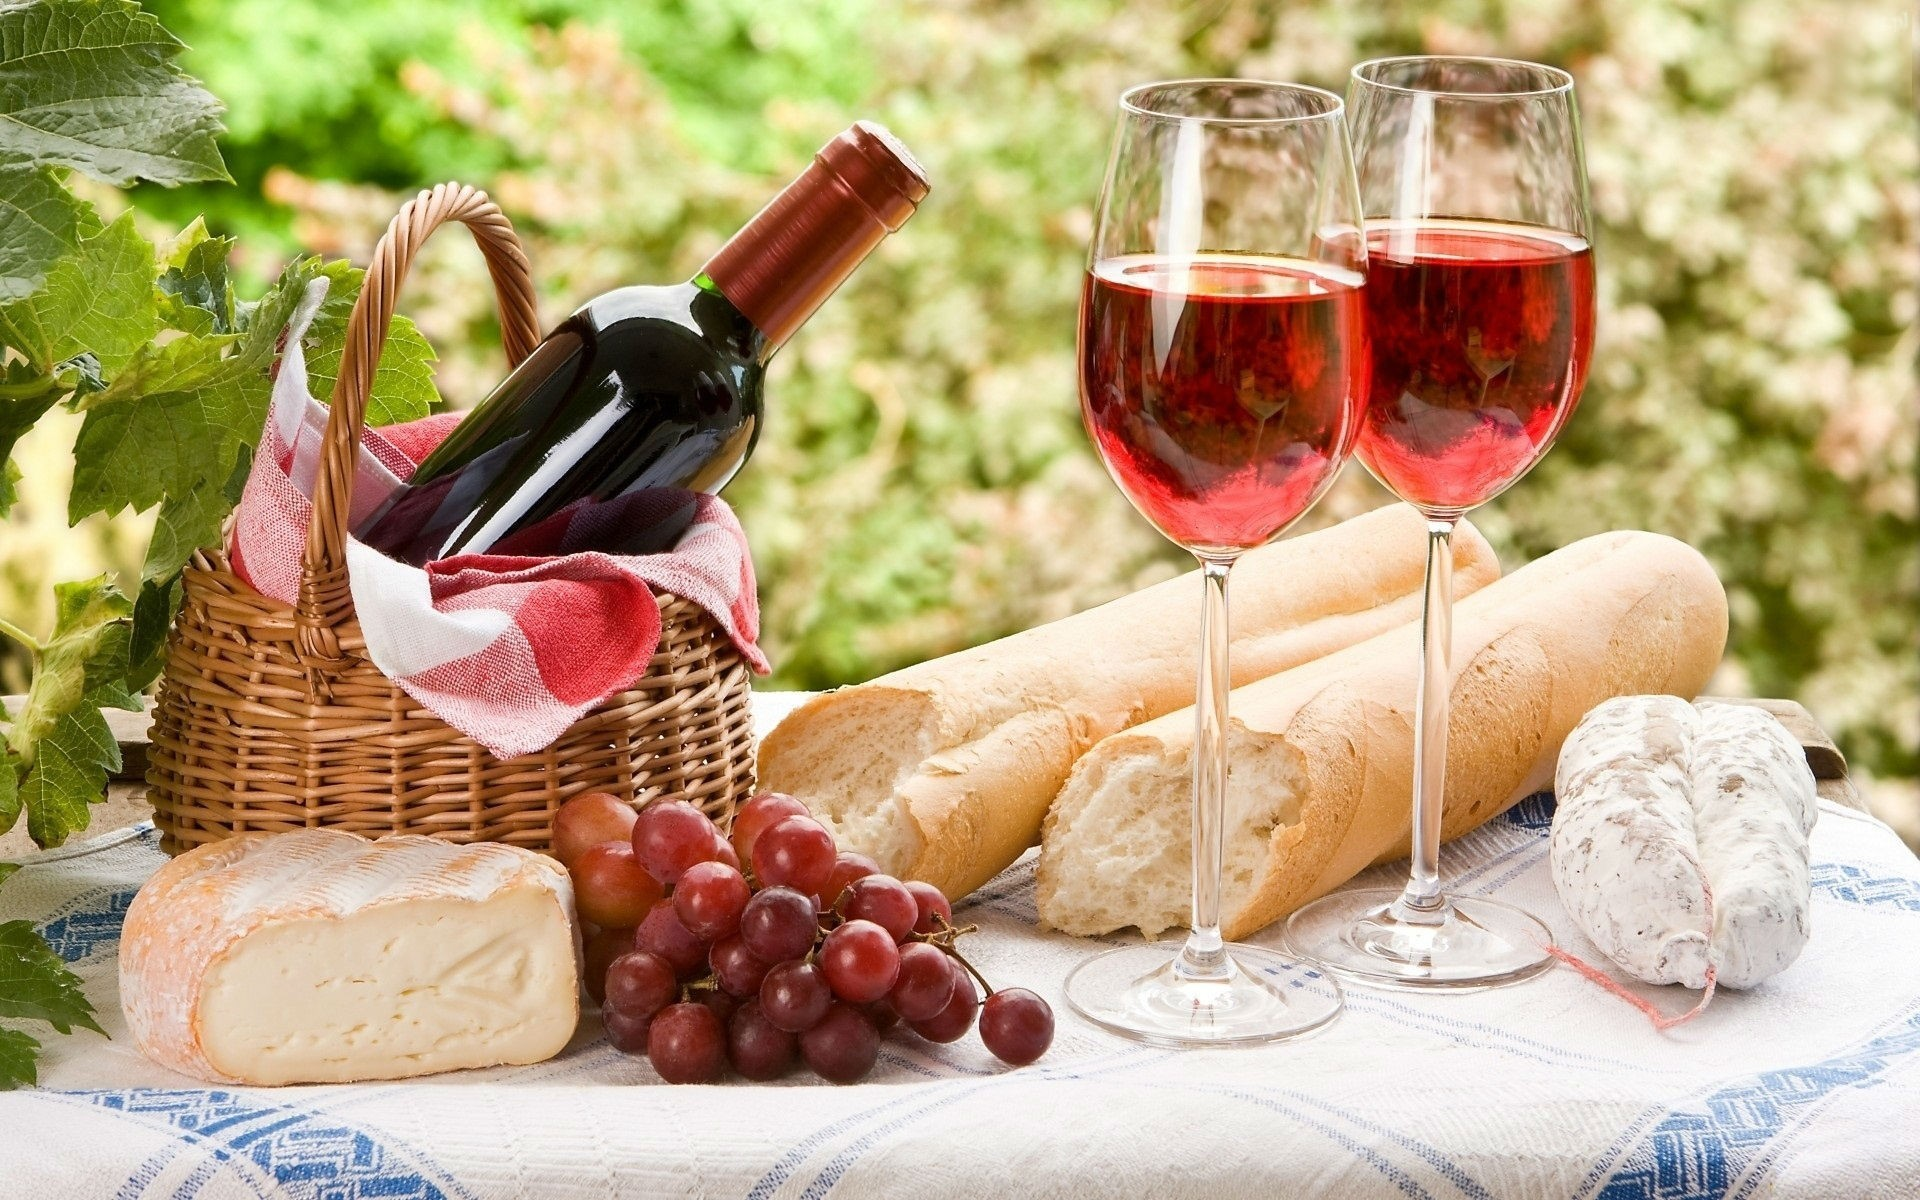 food_and_wine vini per regione